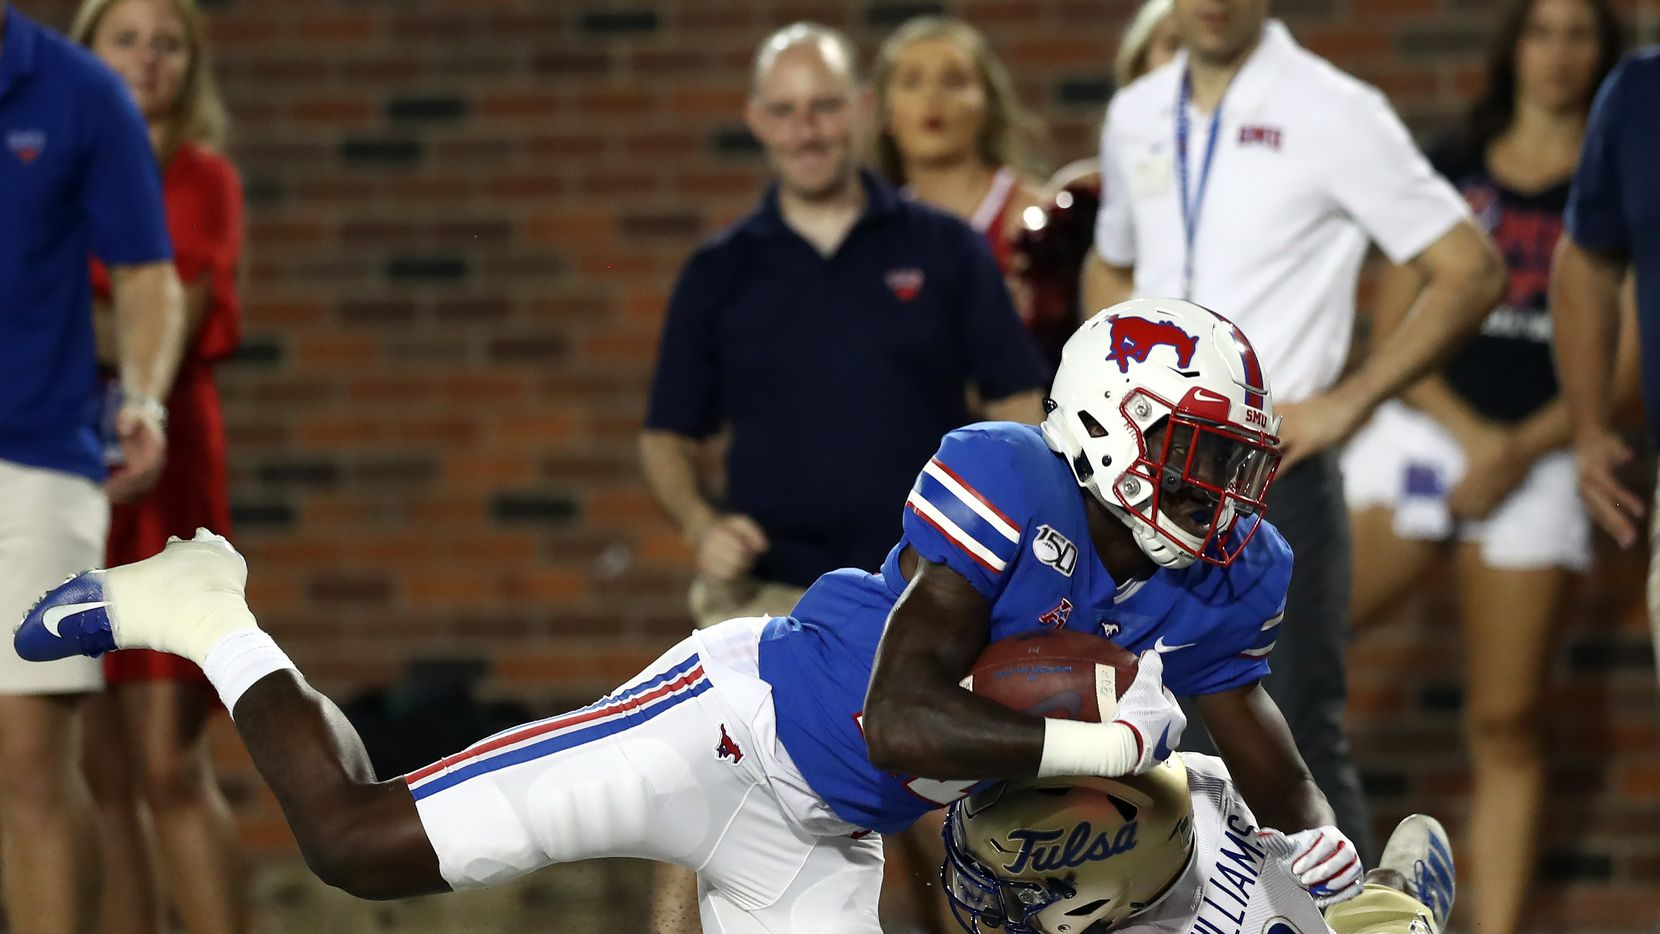 DALLAS, TEXAS - OCTOBER 05:  Rashee Rice #11 of the Southern Methodist Mustangs is tackled by Cristian Williams #3 of the Tulsa Golden Hurricane in the third quarter at Gerald J. Ford Stadium on October 05, 2019 in Dallas, Texas. (Photo by Ronald Martinez/Getty Images)